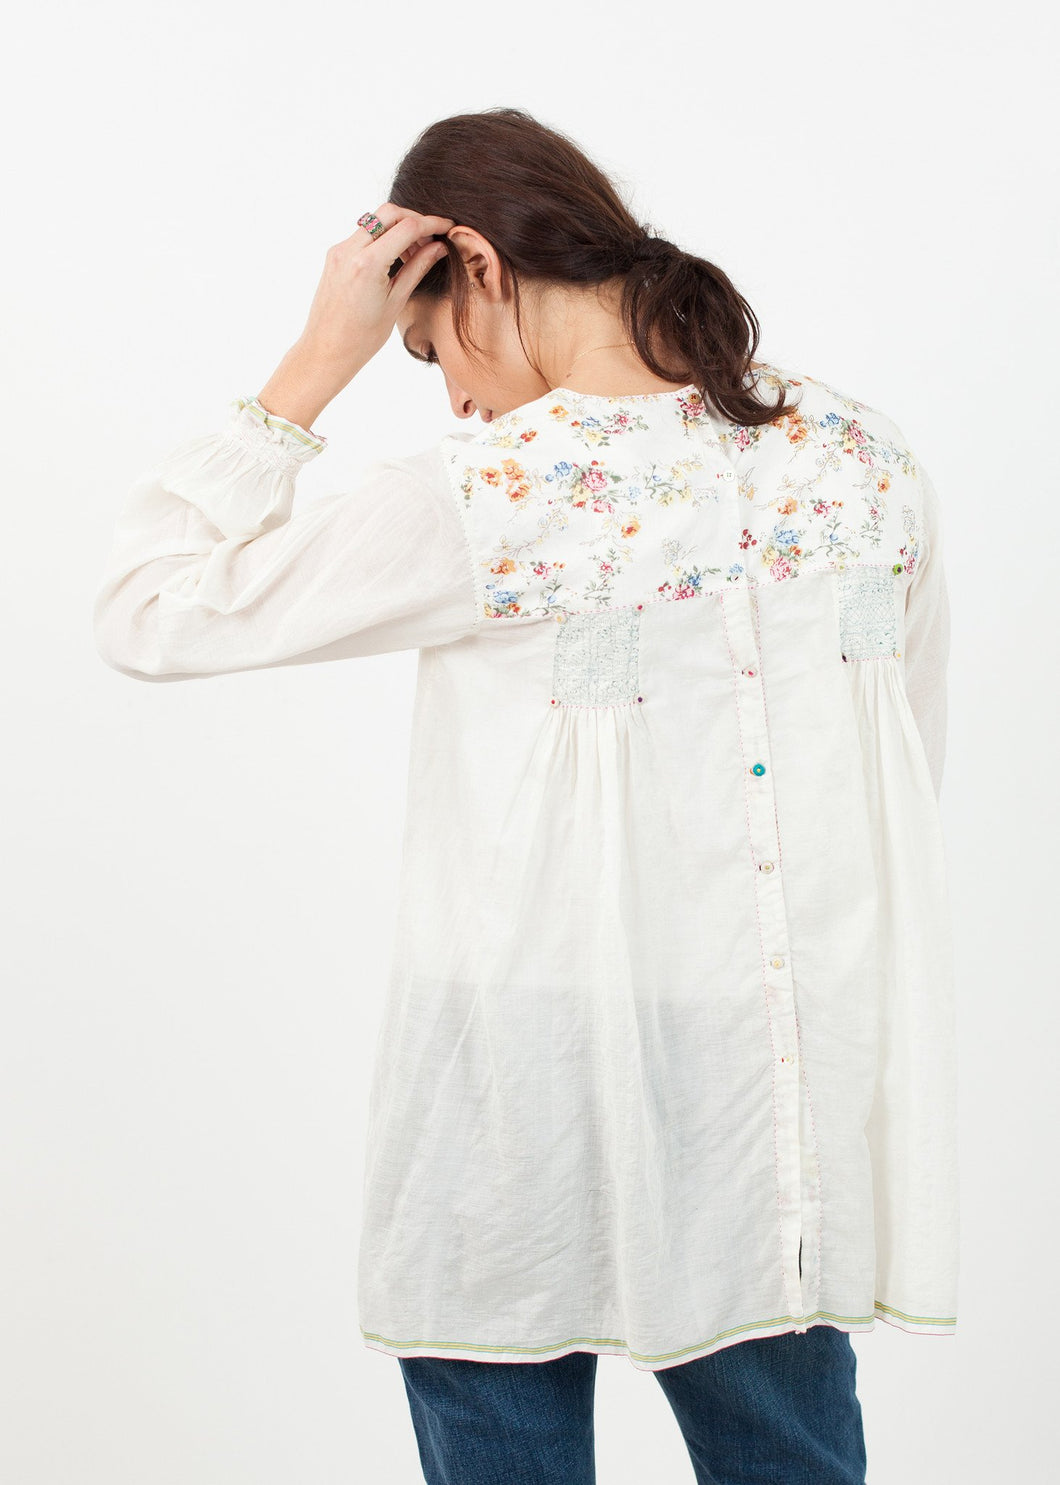 Floral Front Peasant Blouse in White